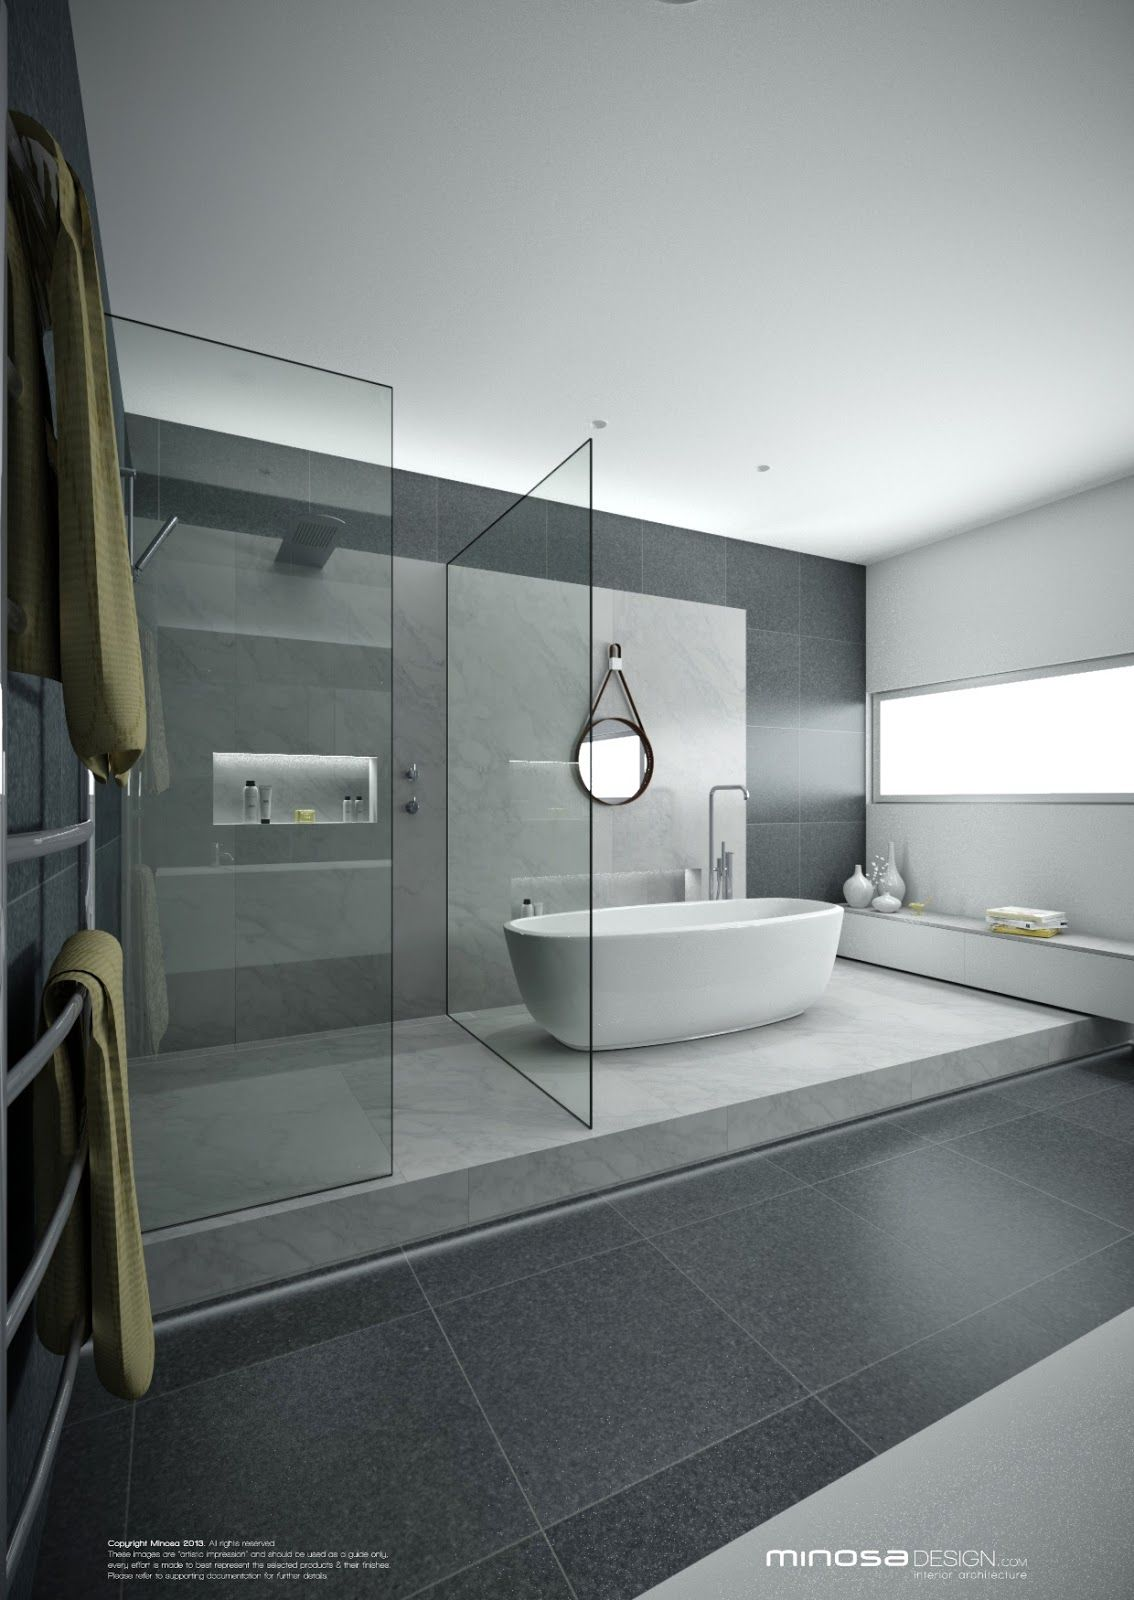 Luxus Badezimmer Wien Minosa Design A Real Showstopper Modern Bathroom Living Places